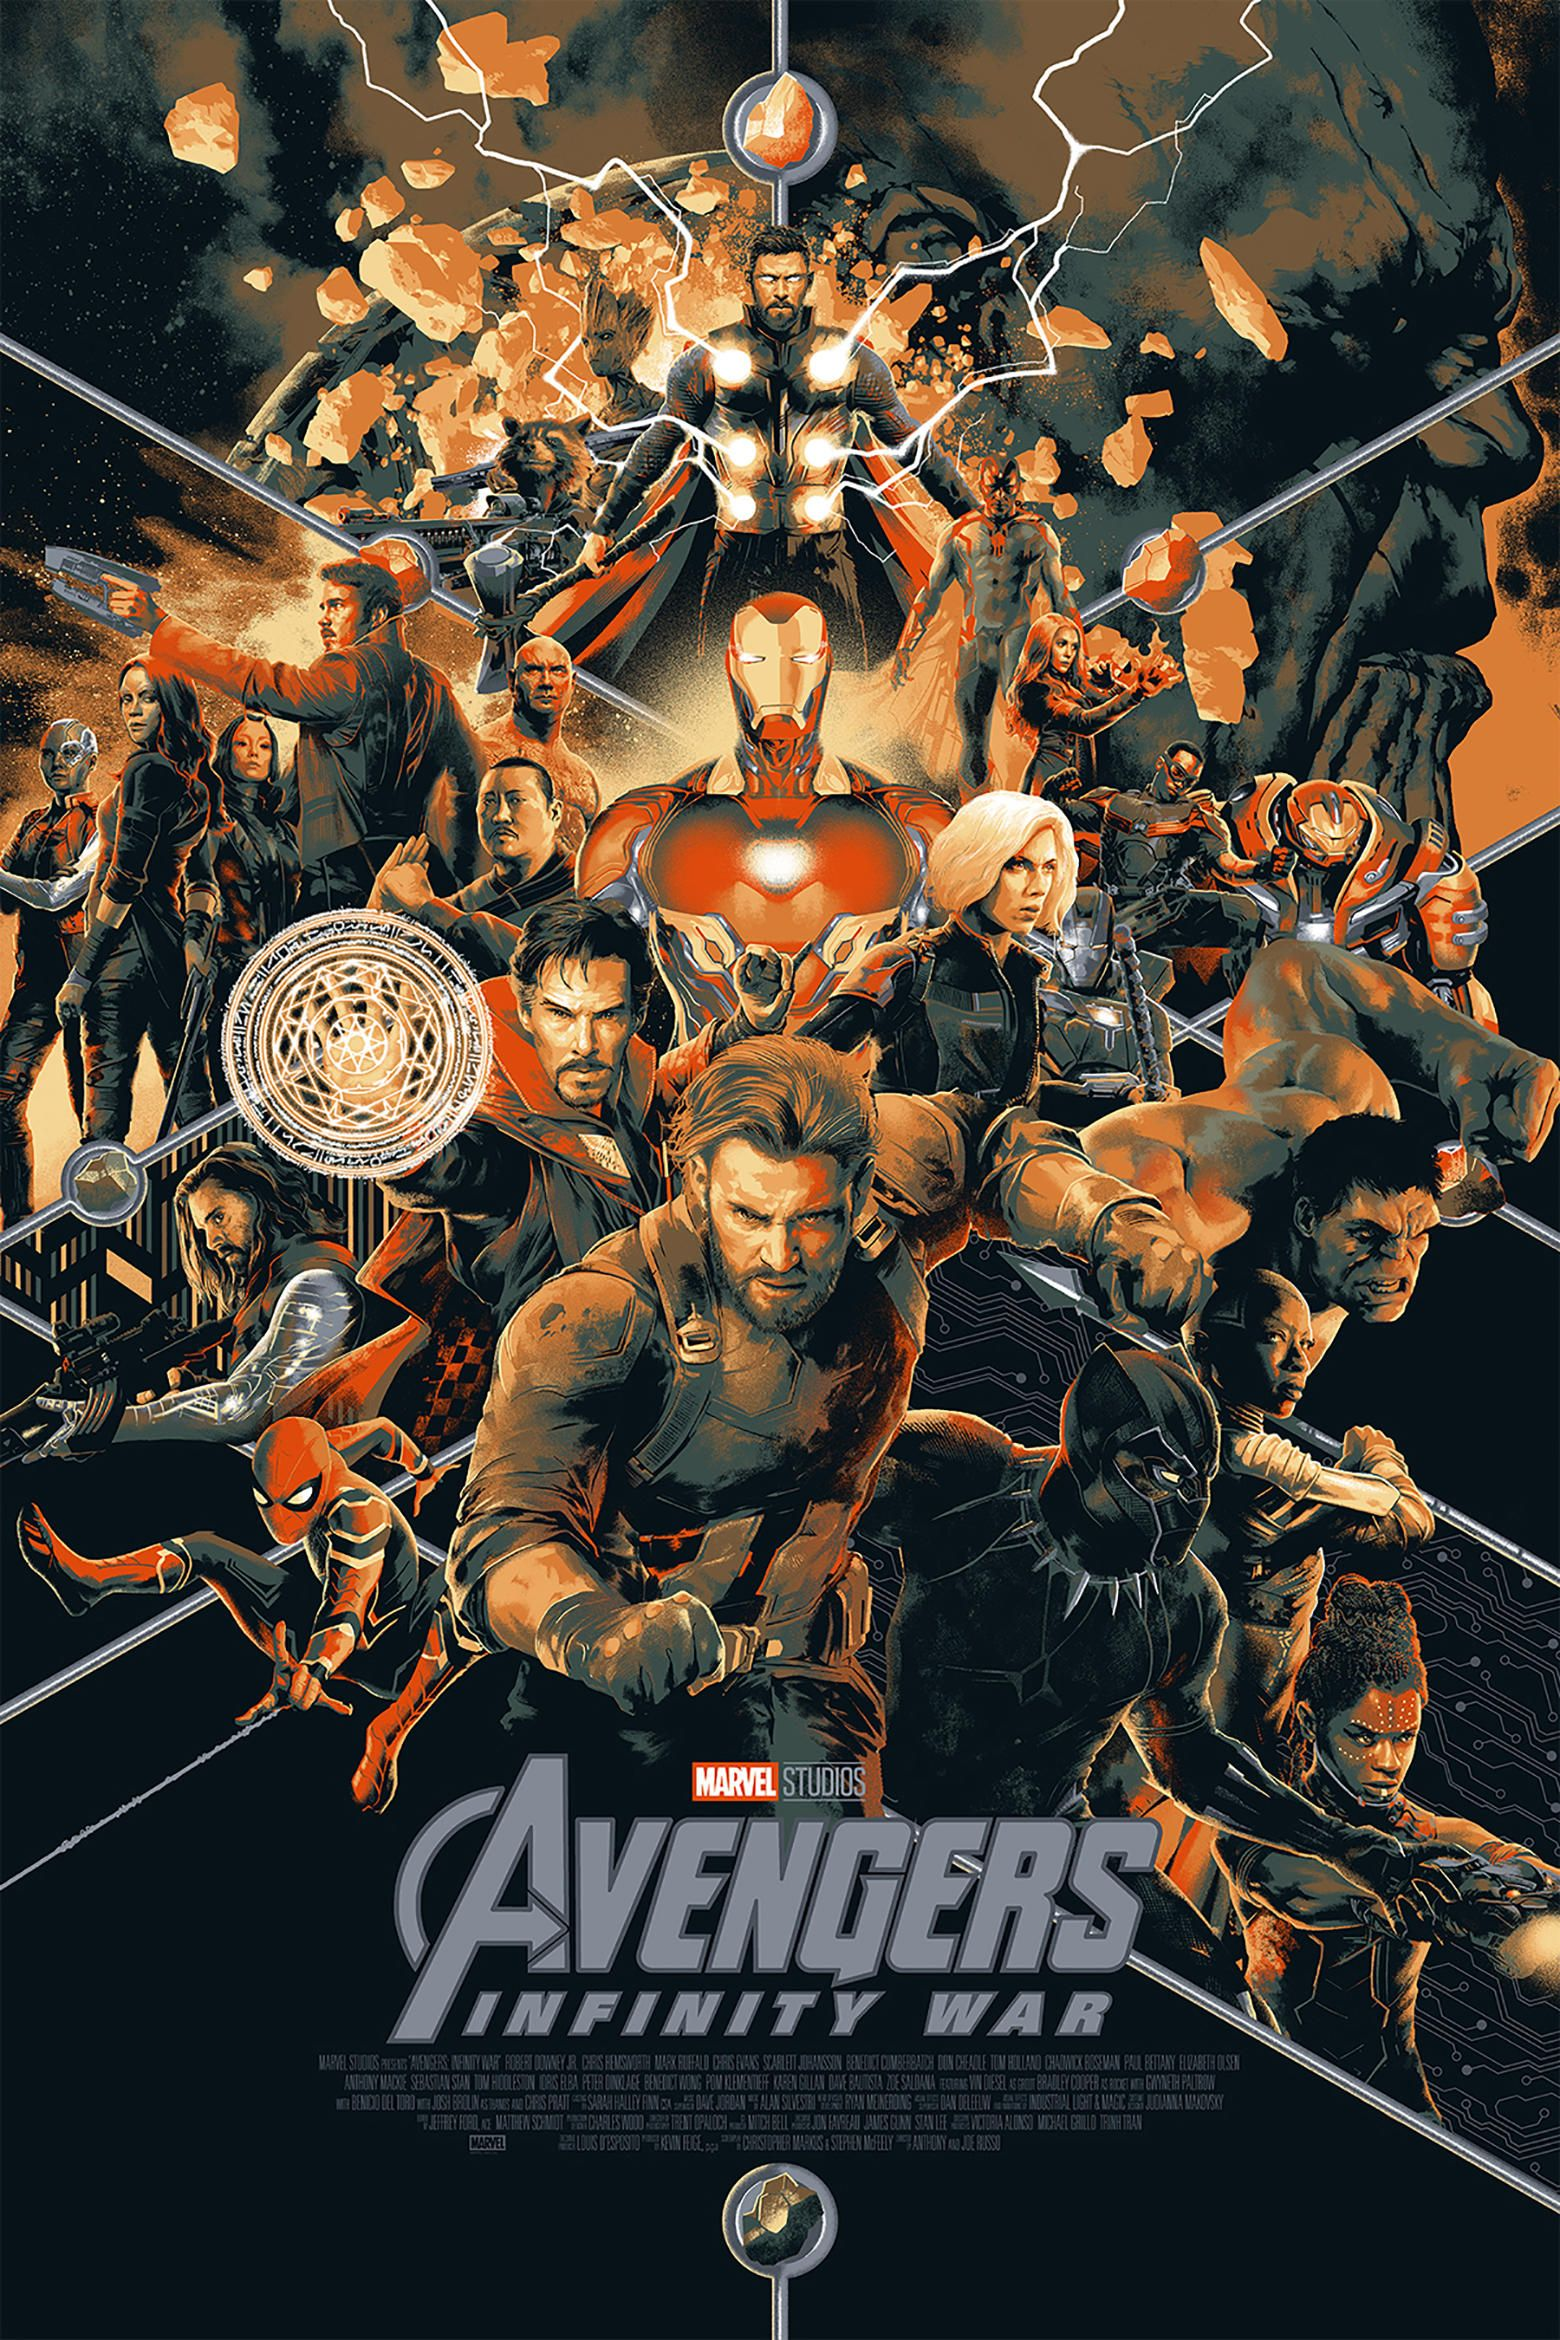 Mondo S San Diego Comic Con Exclusives Includes New Avengers